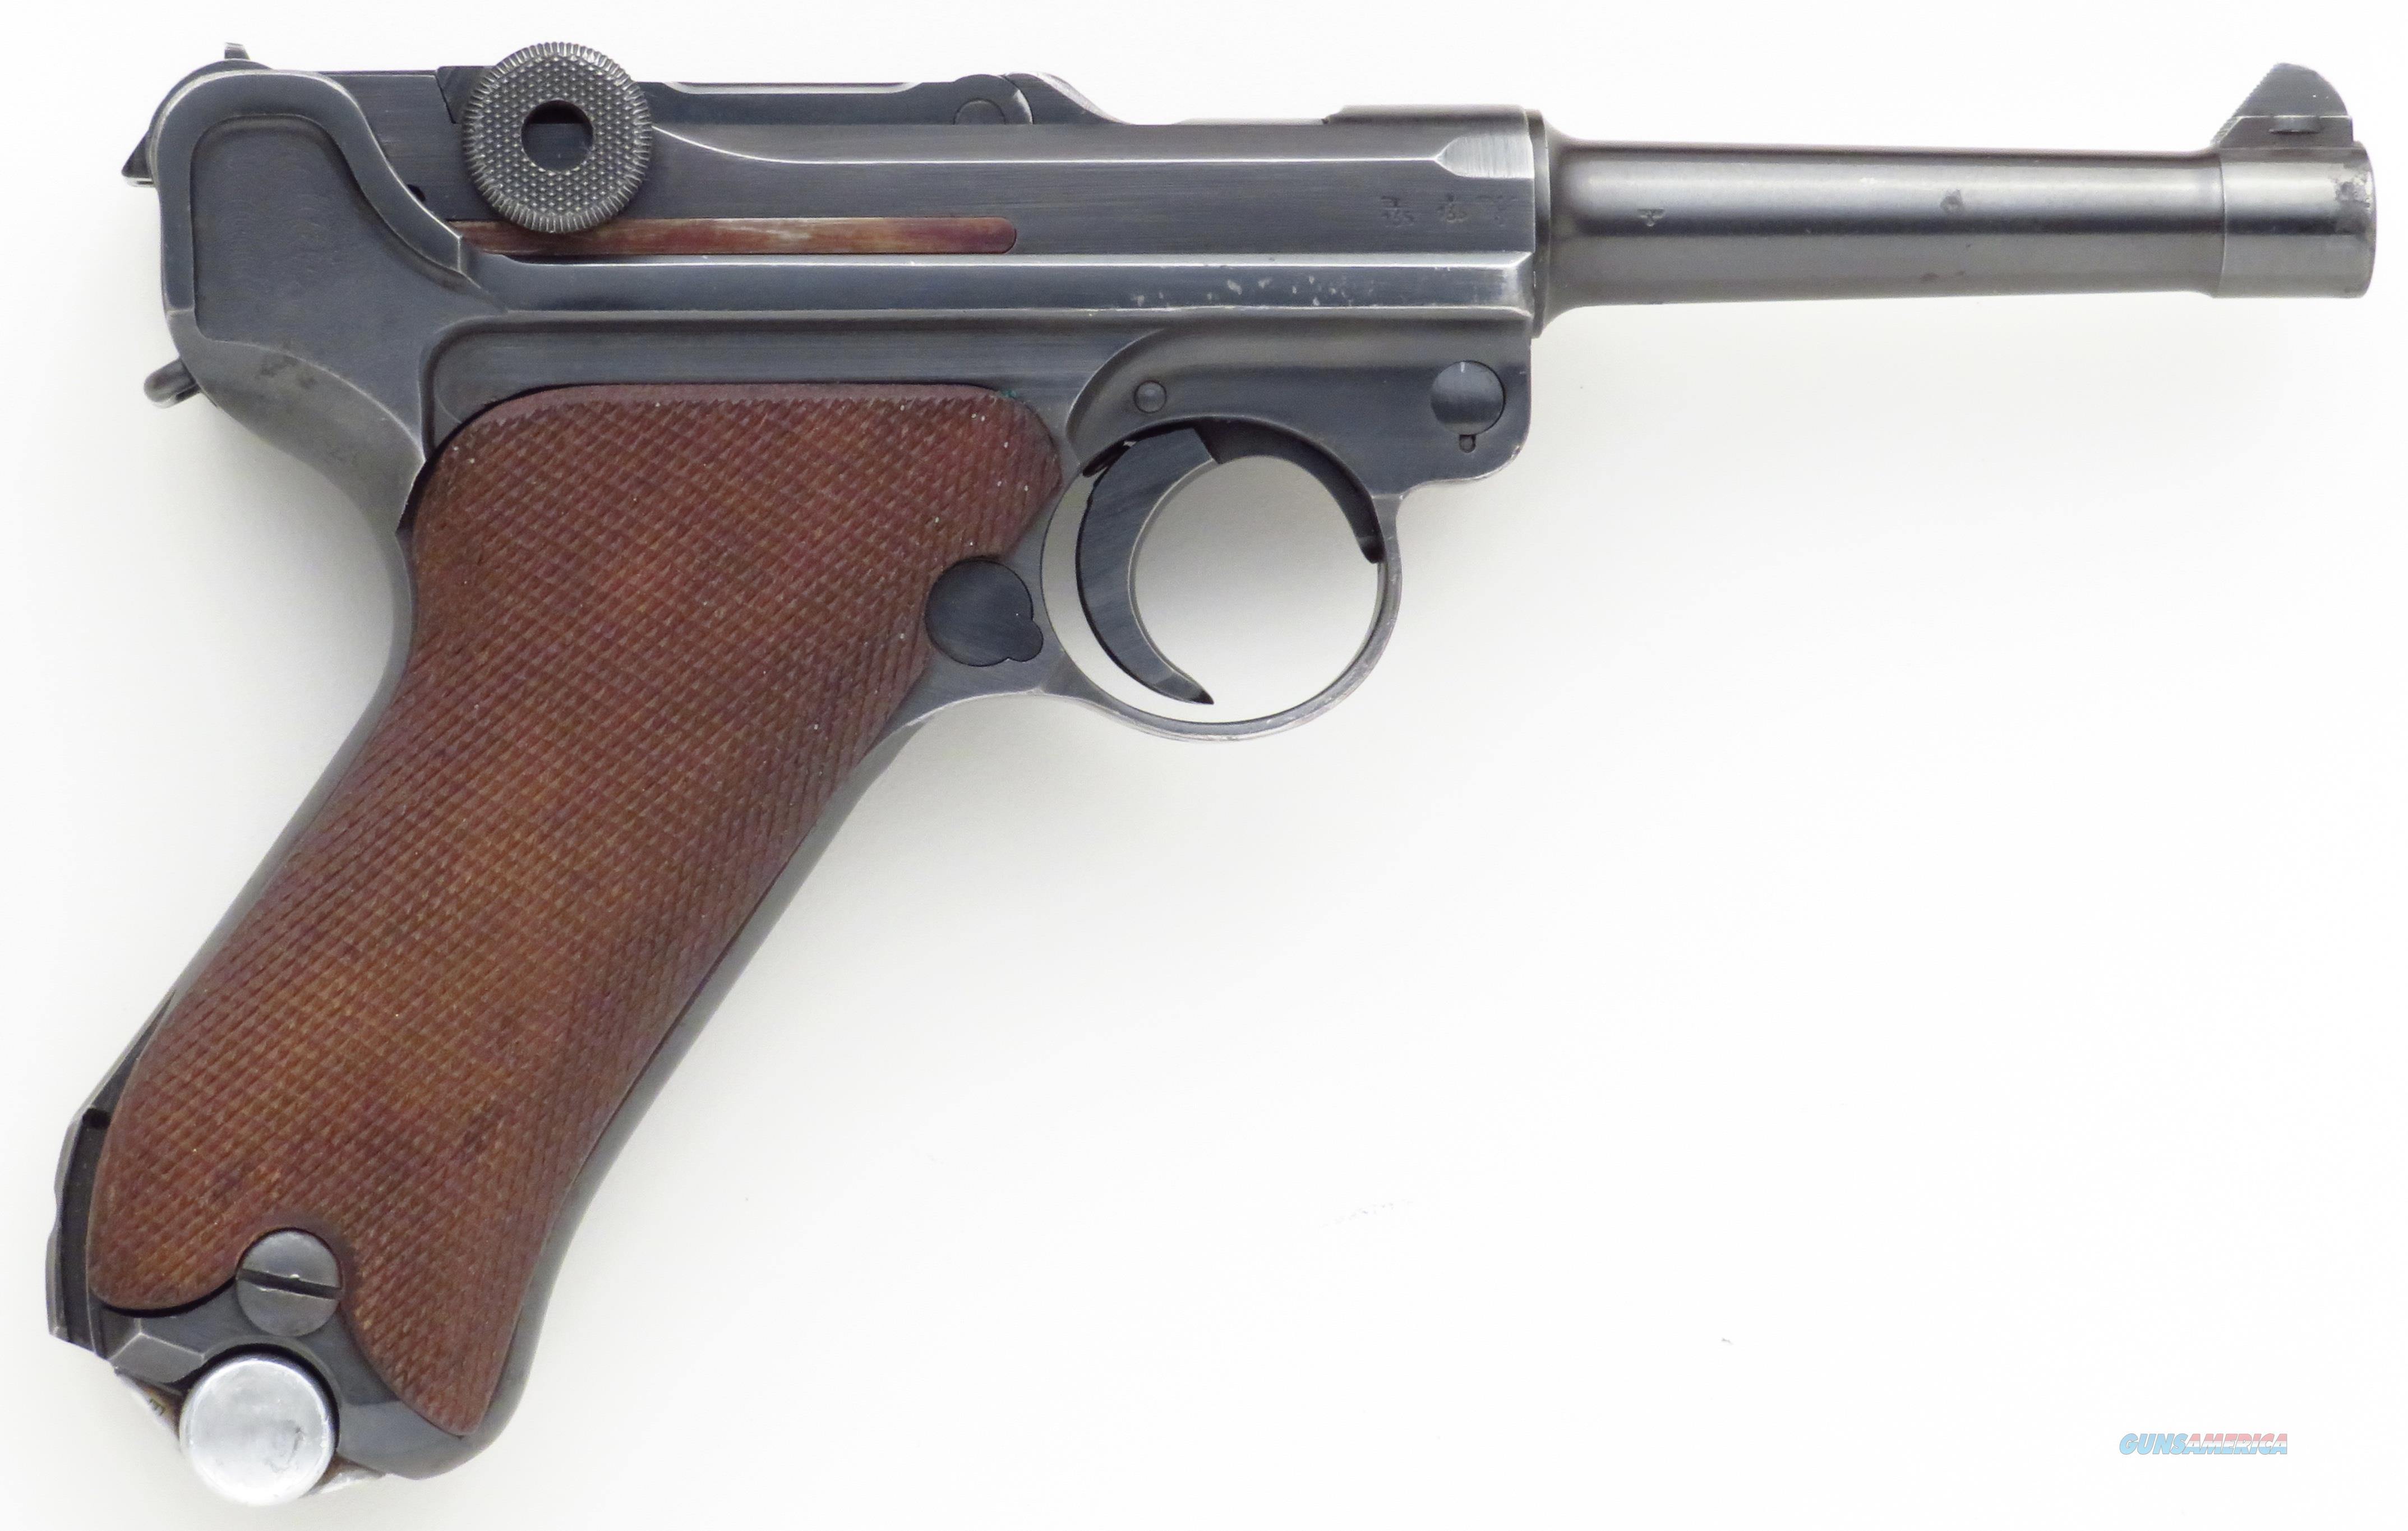 Luger 9mm, 1941, byf (Mauser), serial 507, 4-inch, 85% condition  Guns > Pistols > Luger Pistols